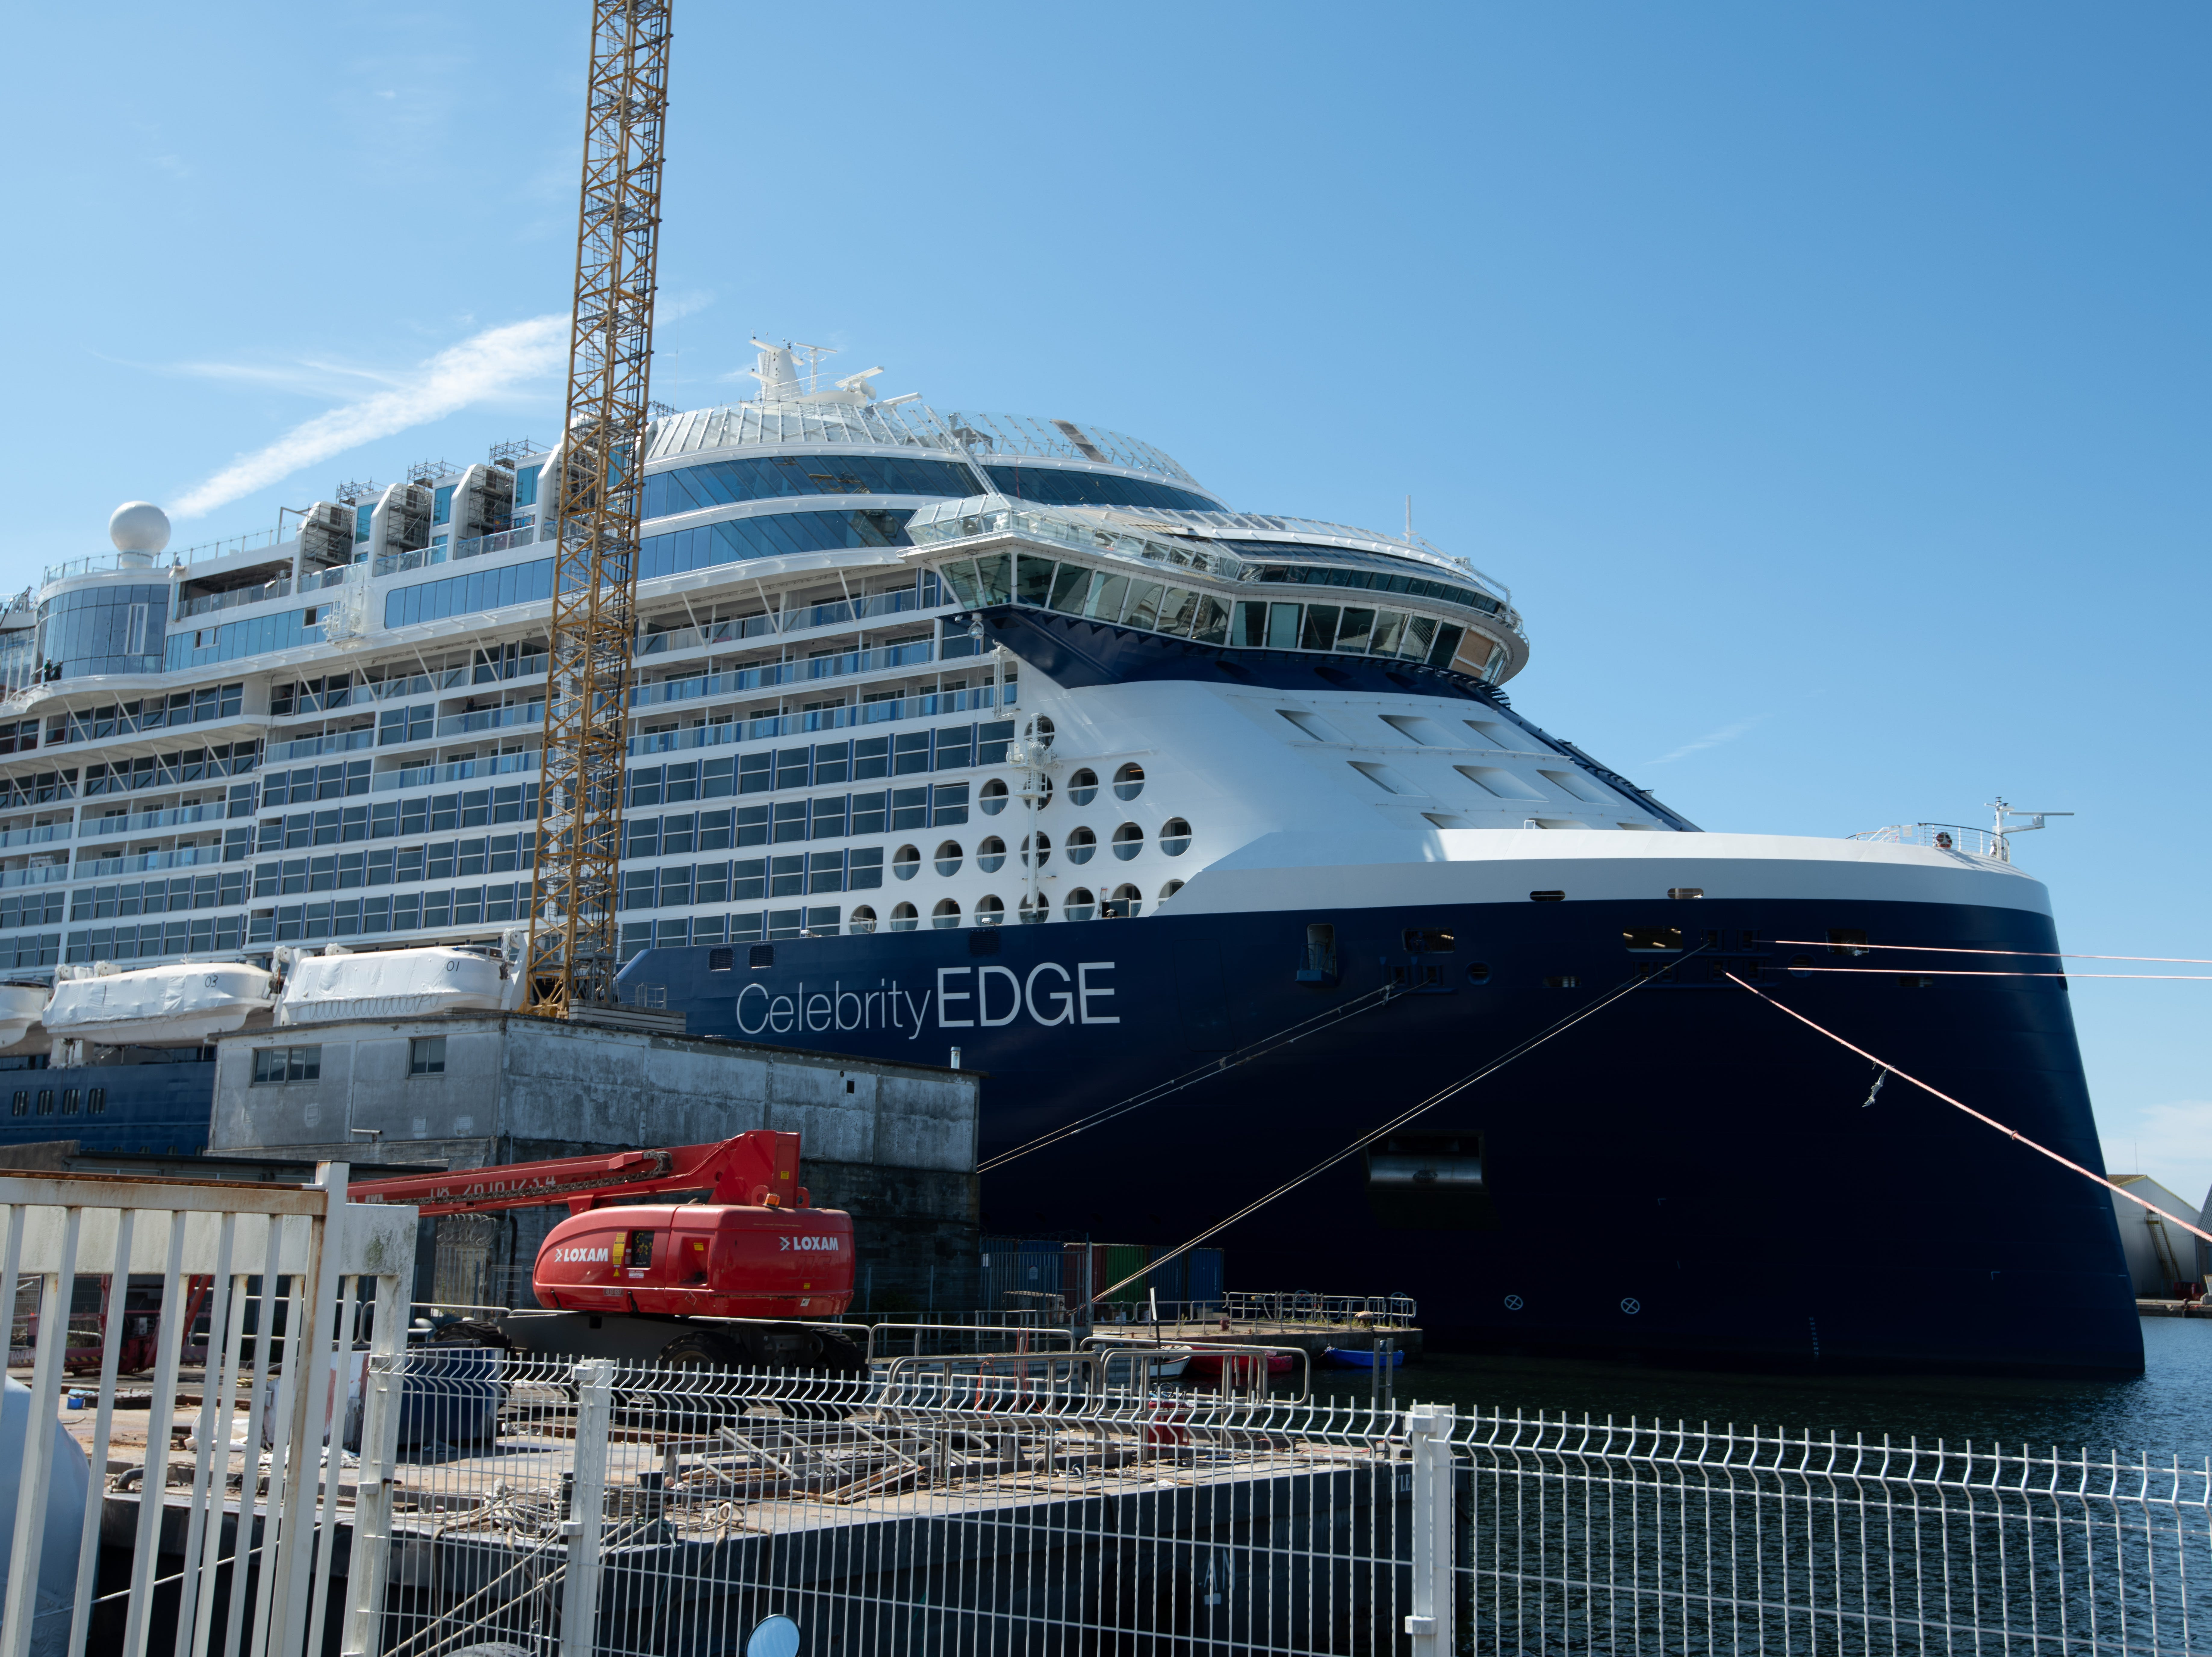 Celebrity Edge is built with an innovative new bow shape.